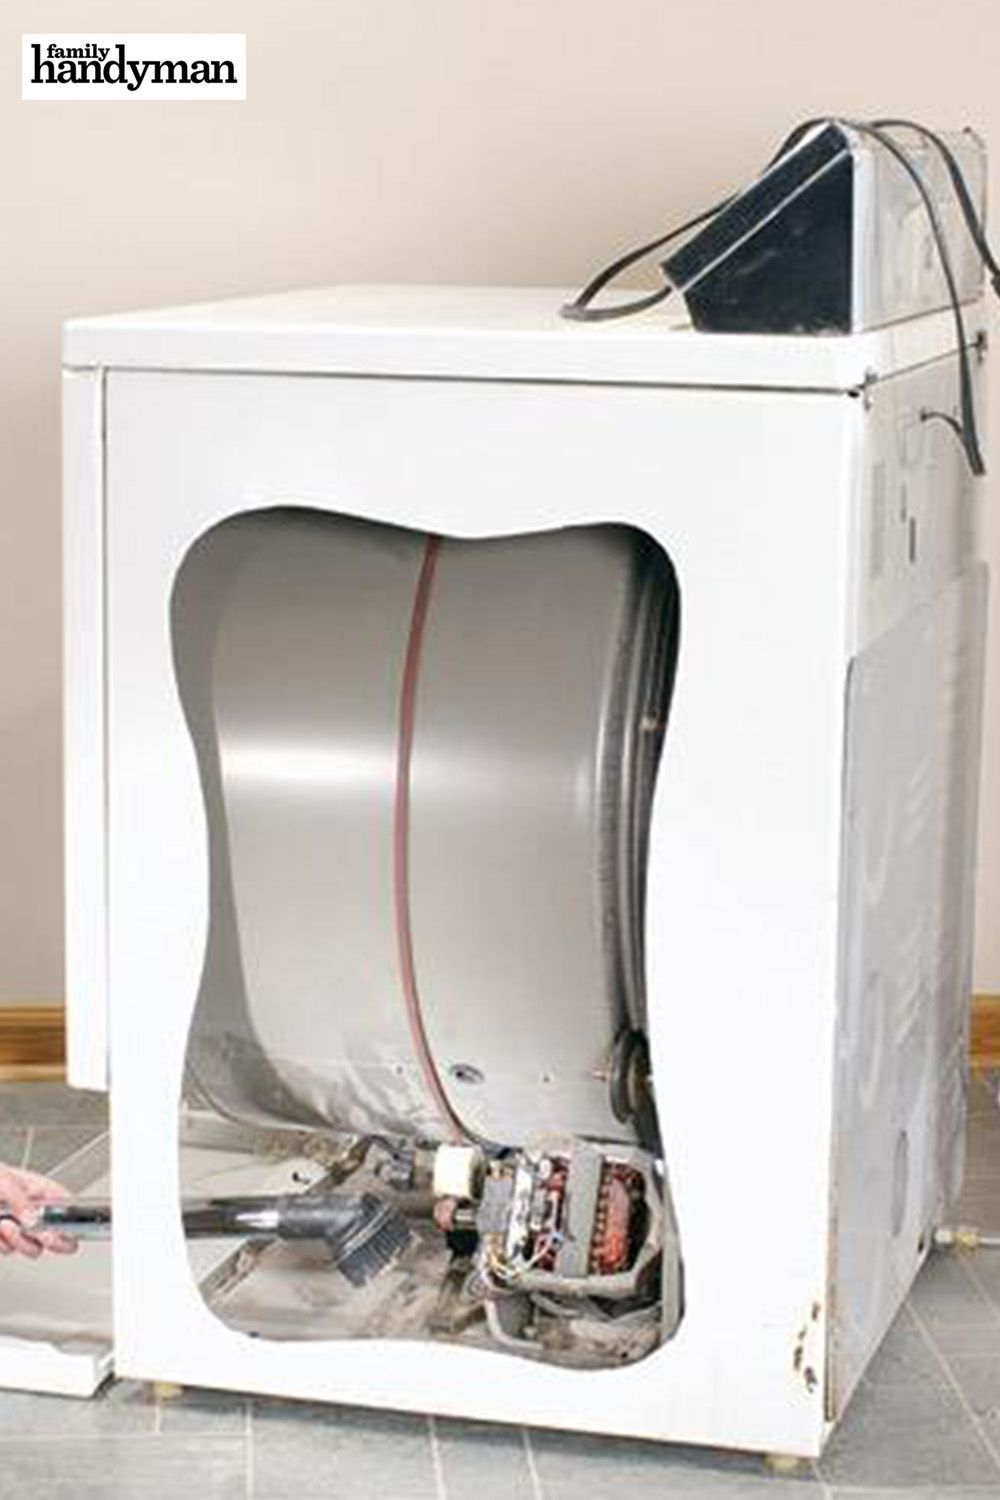 Remove Dryer Lint Diy home repair, House cleaning tips